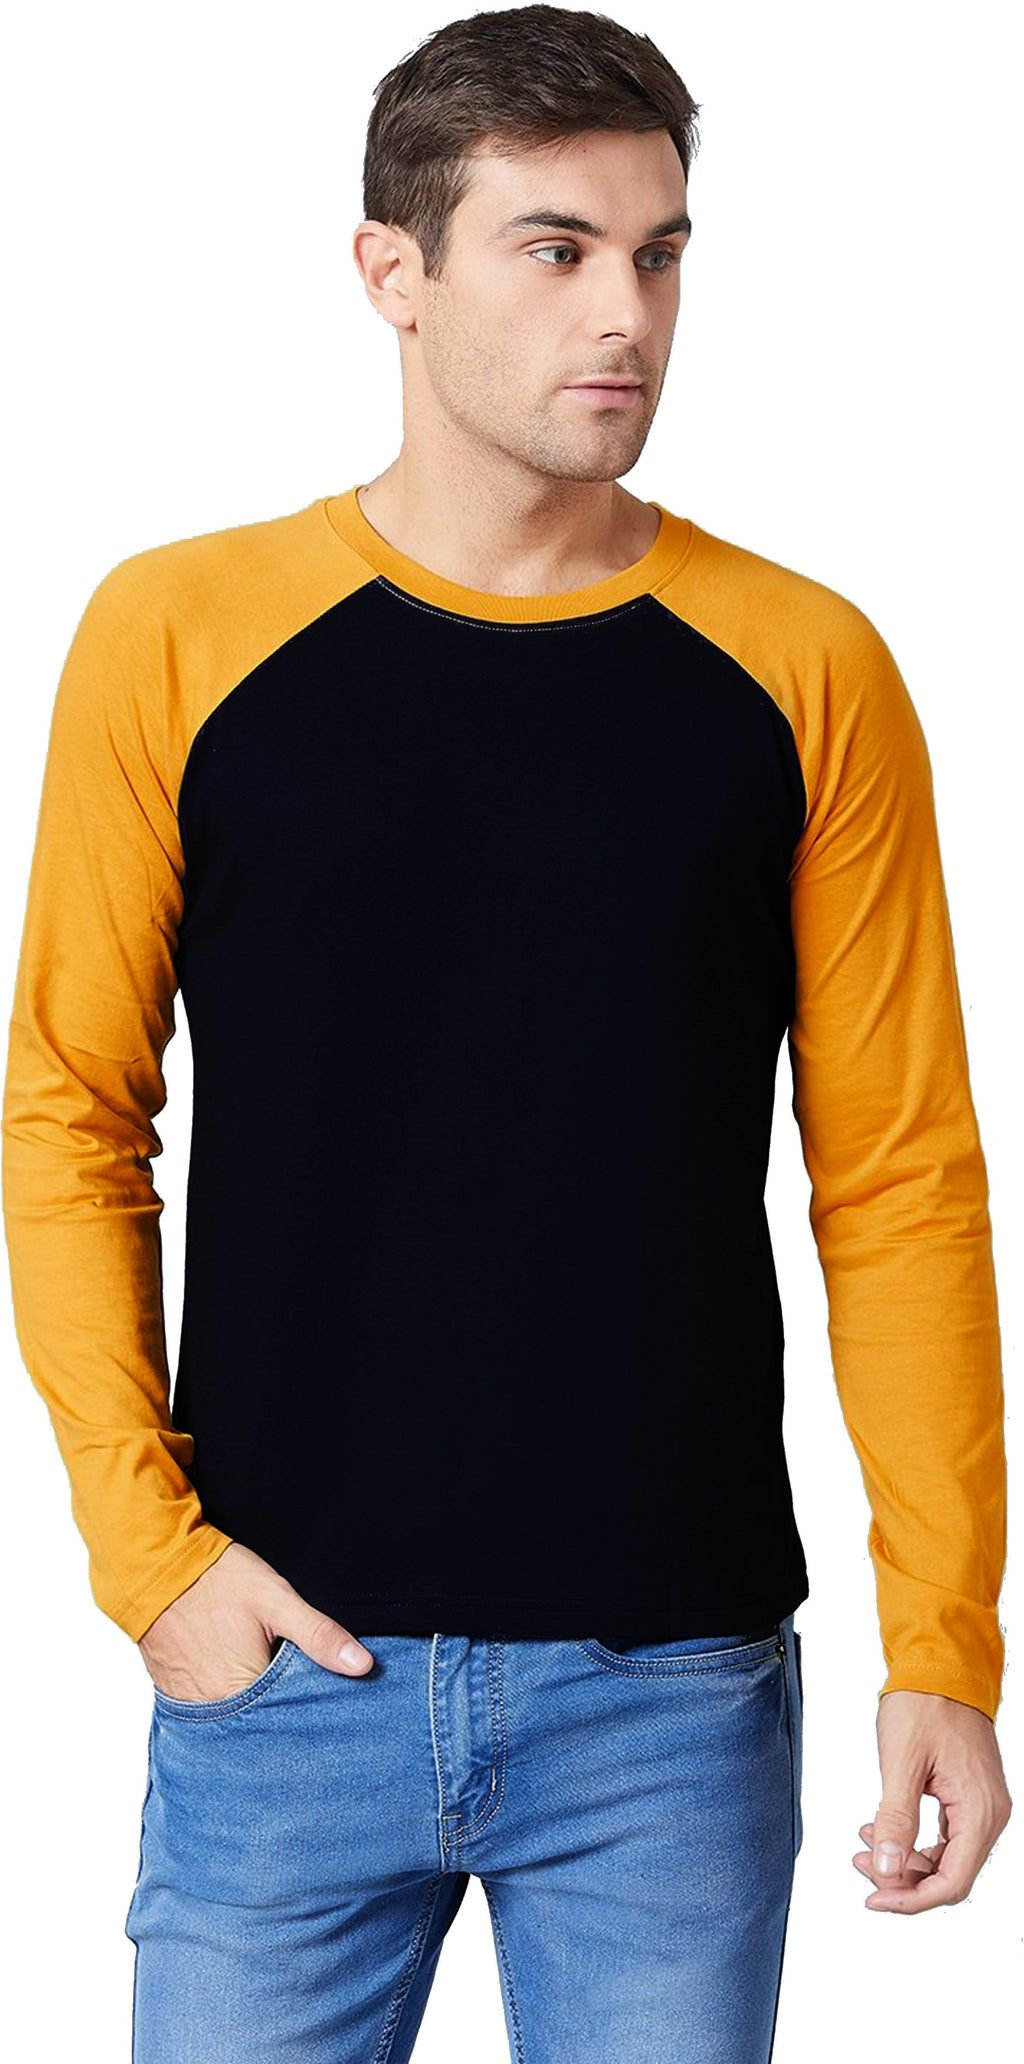 Men's Color Block Style Navy-Mustard Yellow Full Sleeve Tshirt